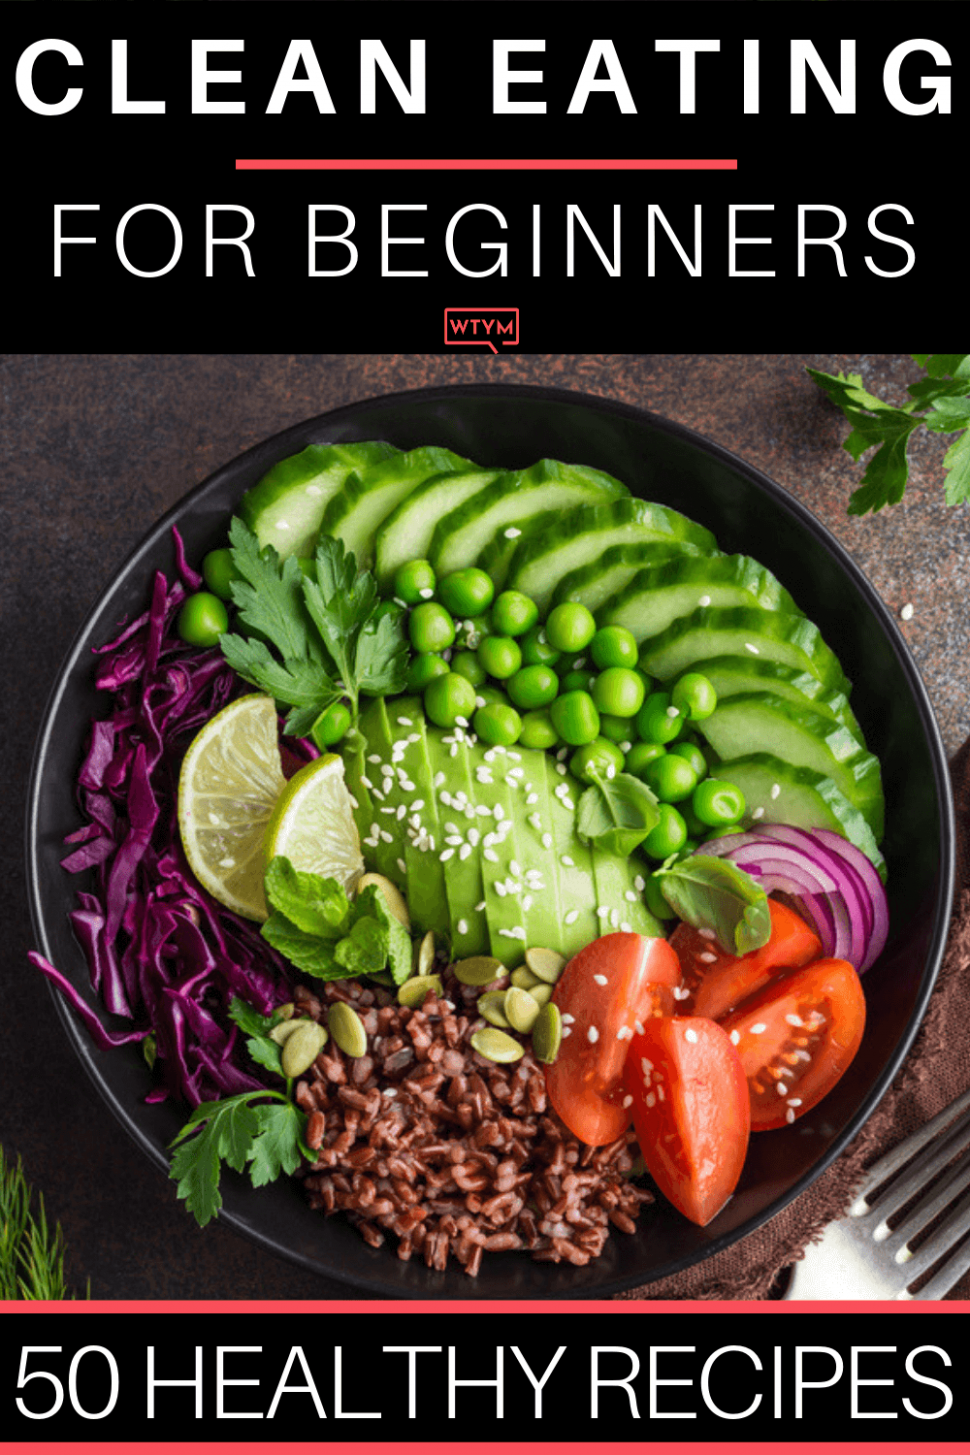 Clean Eating Recipes for Weight Loss! 15 Healthy Recipes - clean eating recipes dinner